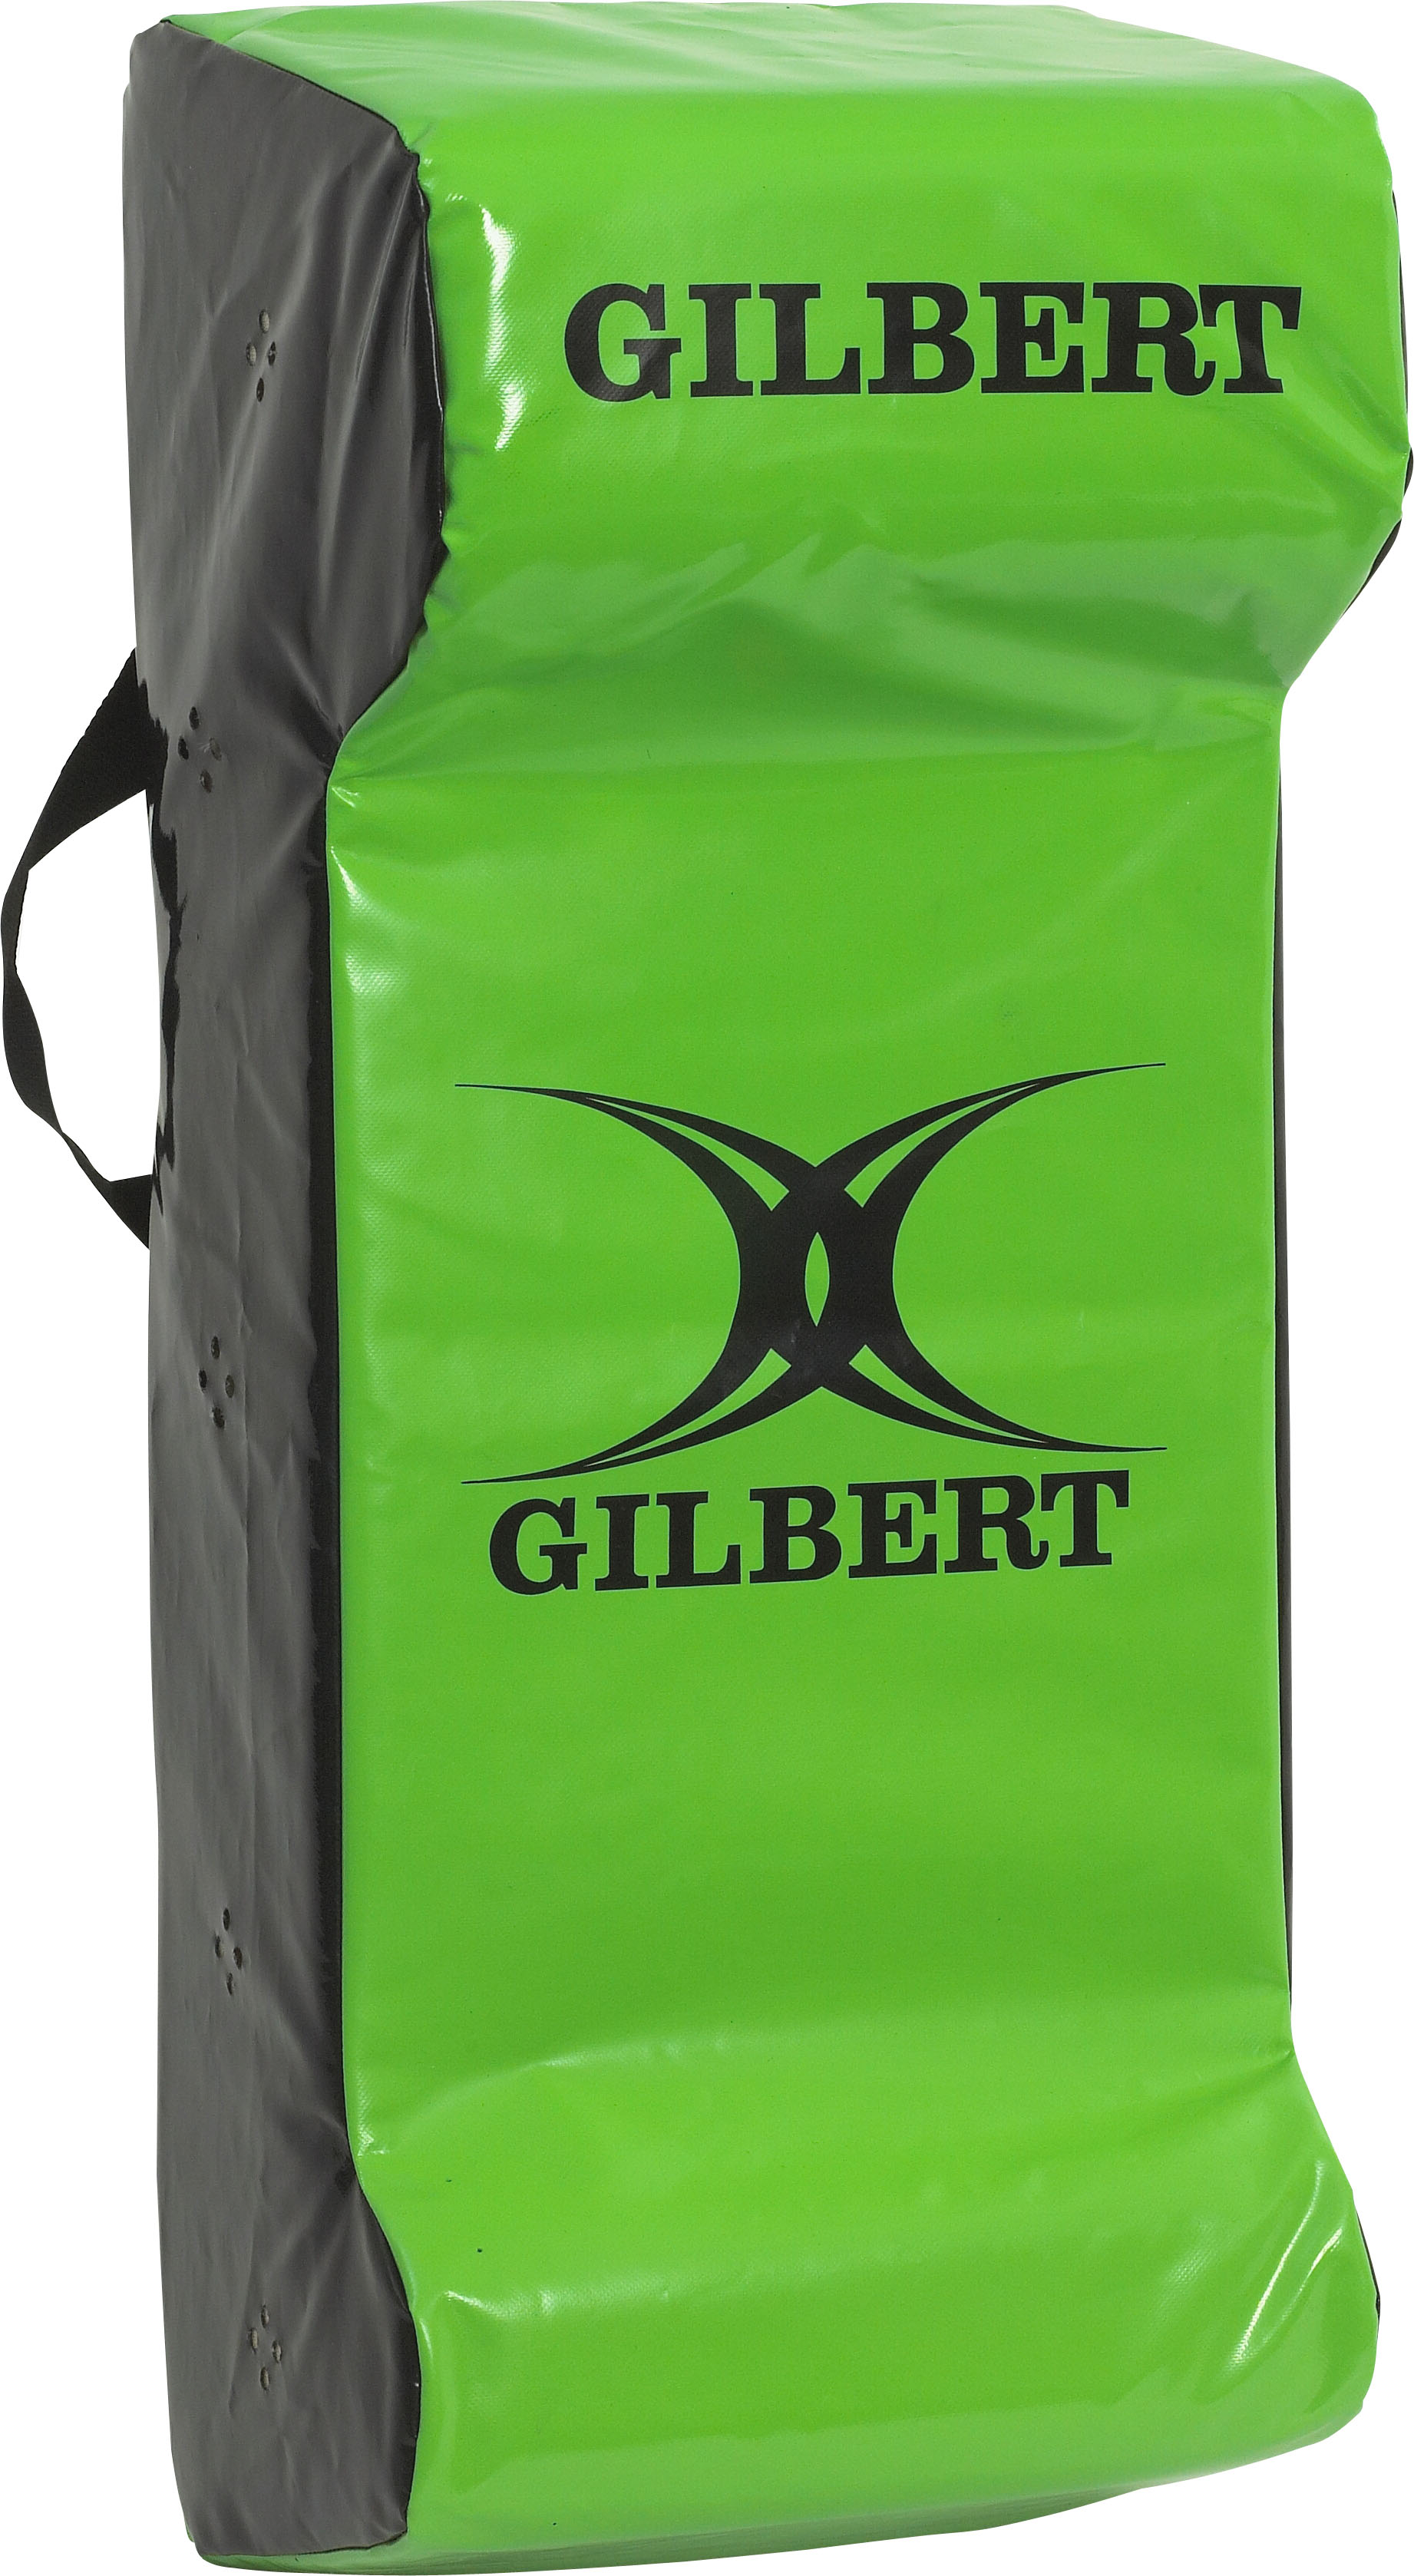 New Gilbert Tackle Bags And Pitchside Training Equipment